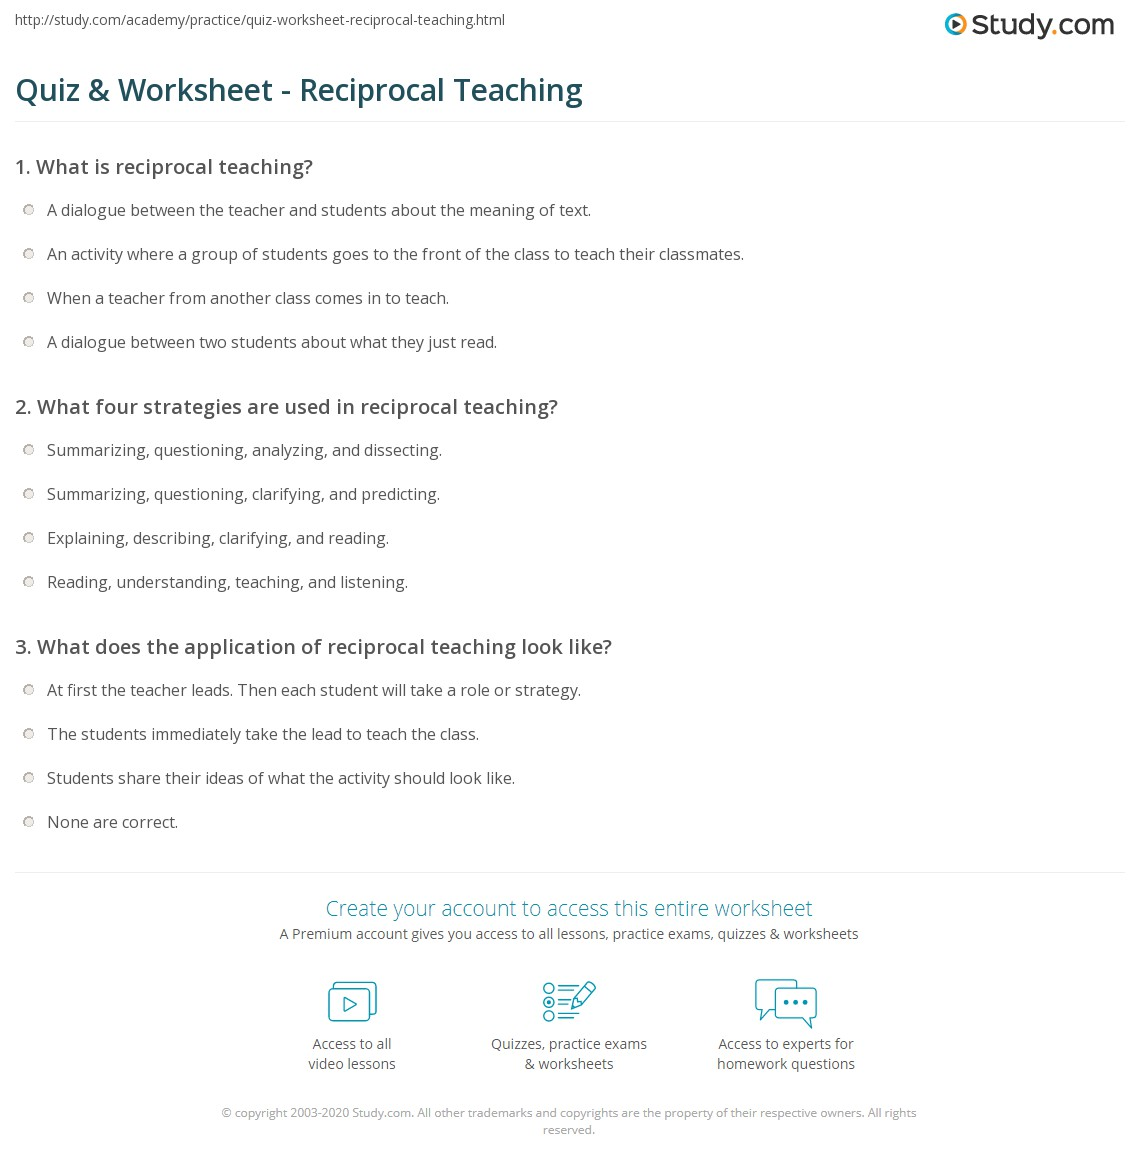 Quiz Worksheet Reciprocal Teaching – Reciprocal Teaching Worksheet